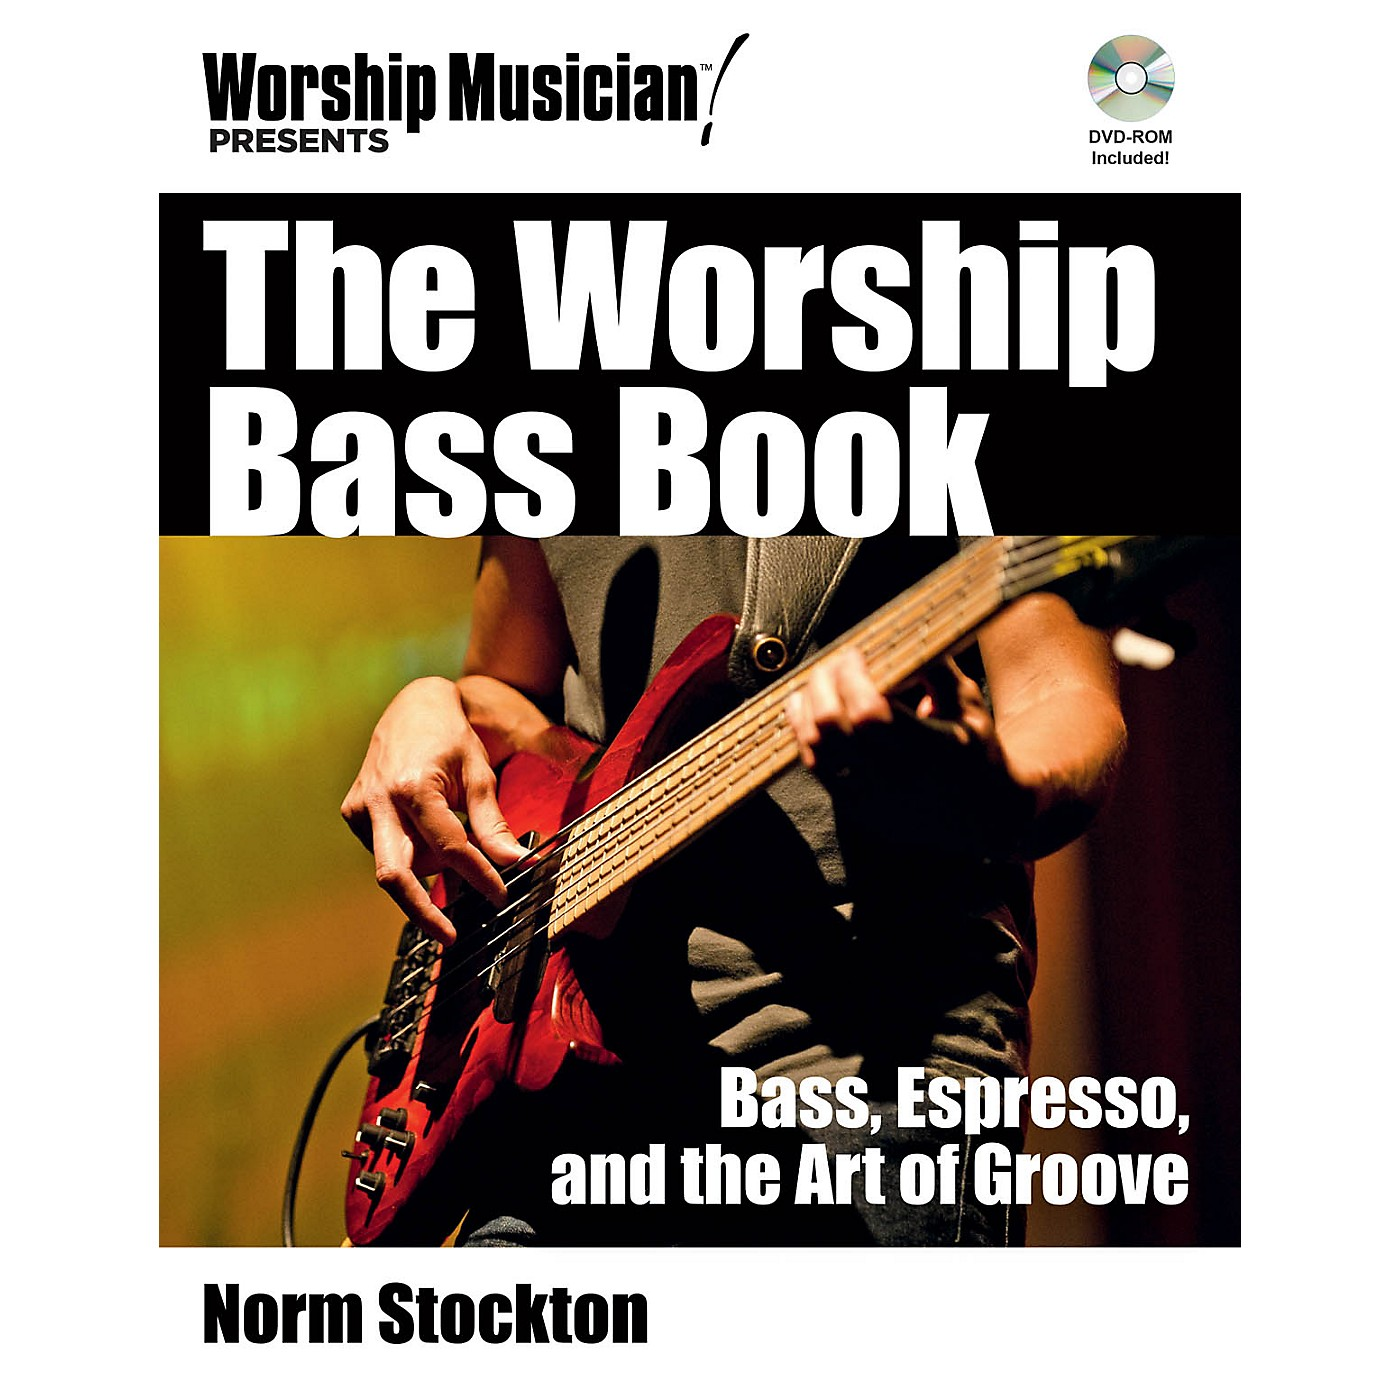 Hal Leonard The Worship Bass Book Worship Musician Presents Series Softcover with DVD-ROM Written by Norm Stockton thumbnail